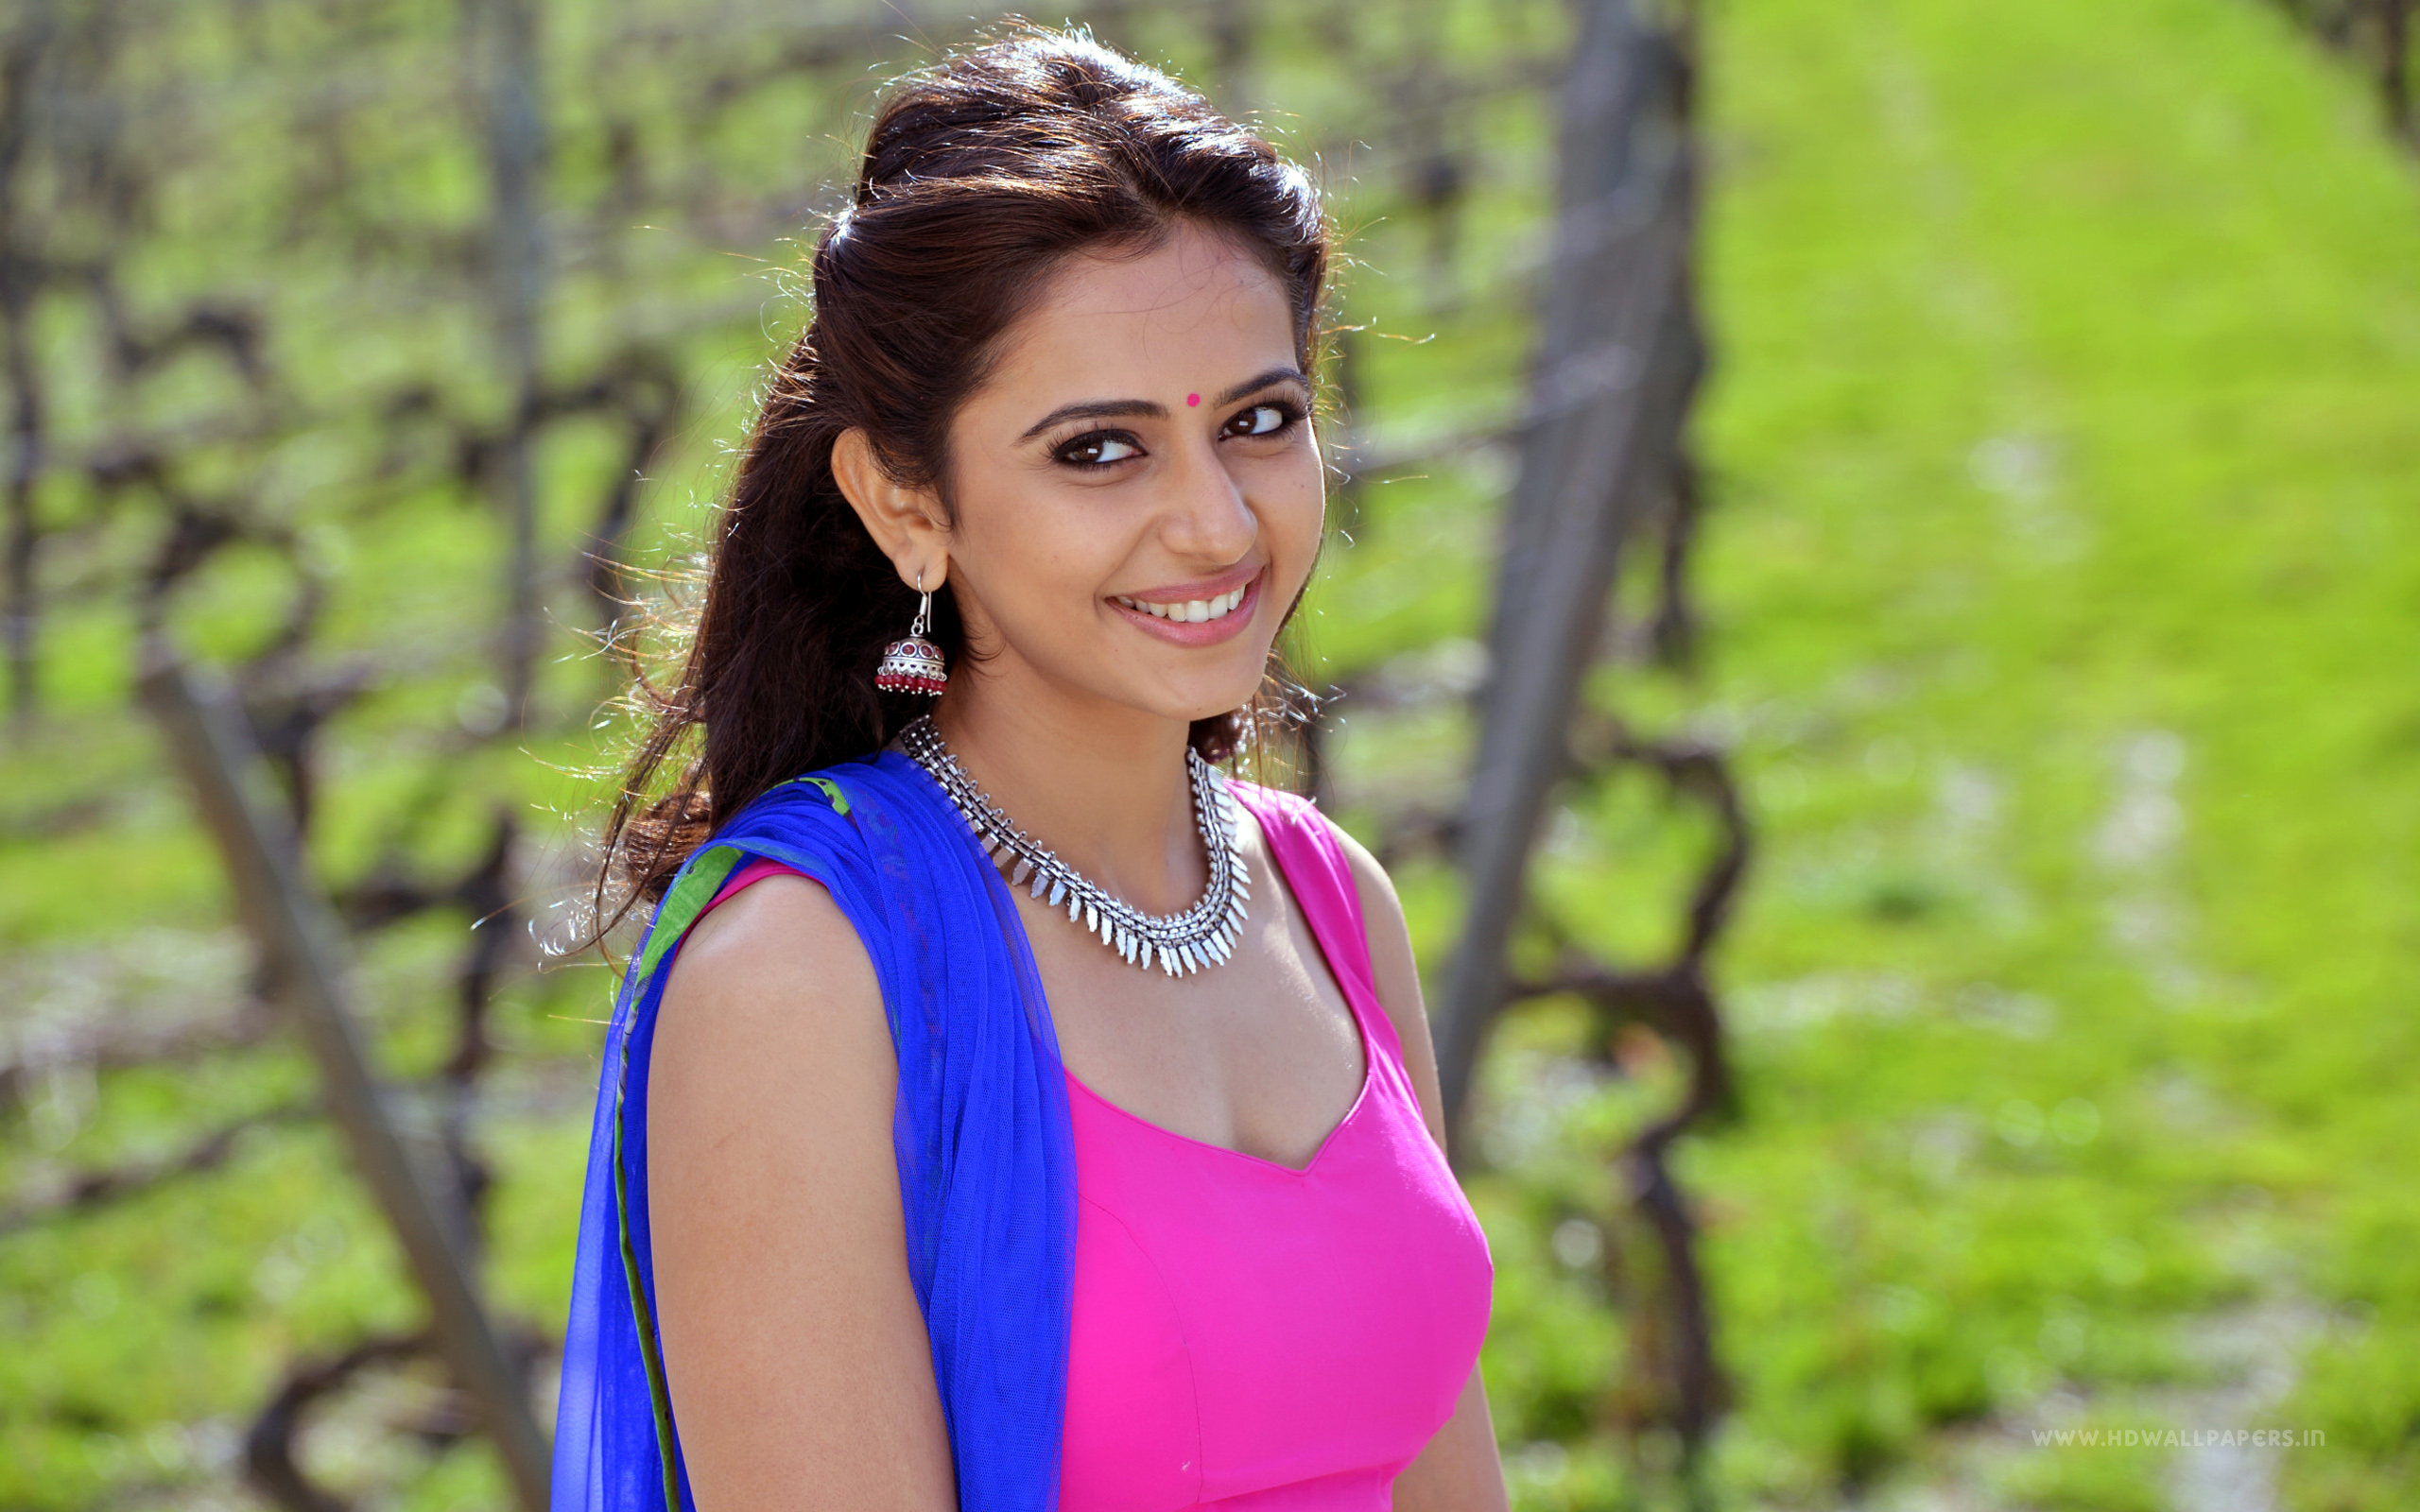 beautiful rakul preet singh smiling look desktop mobile free background hd pictures